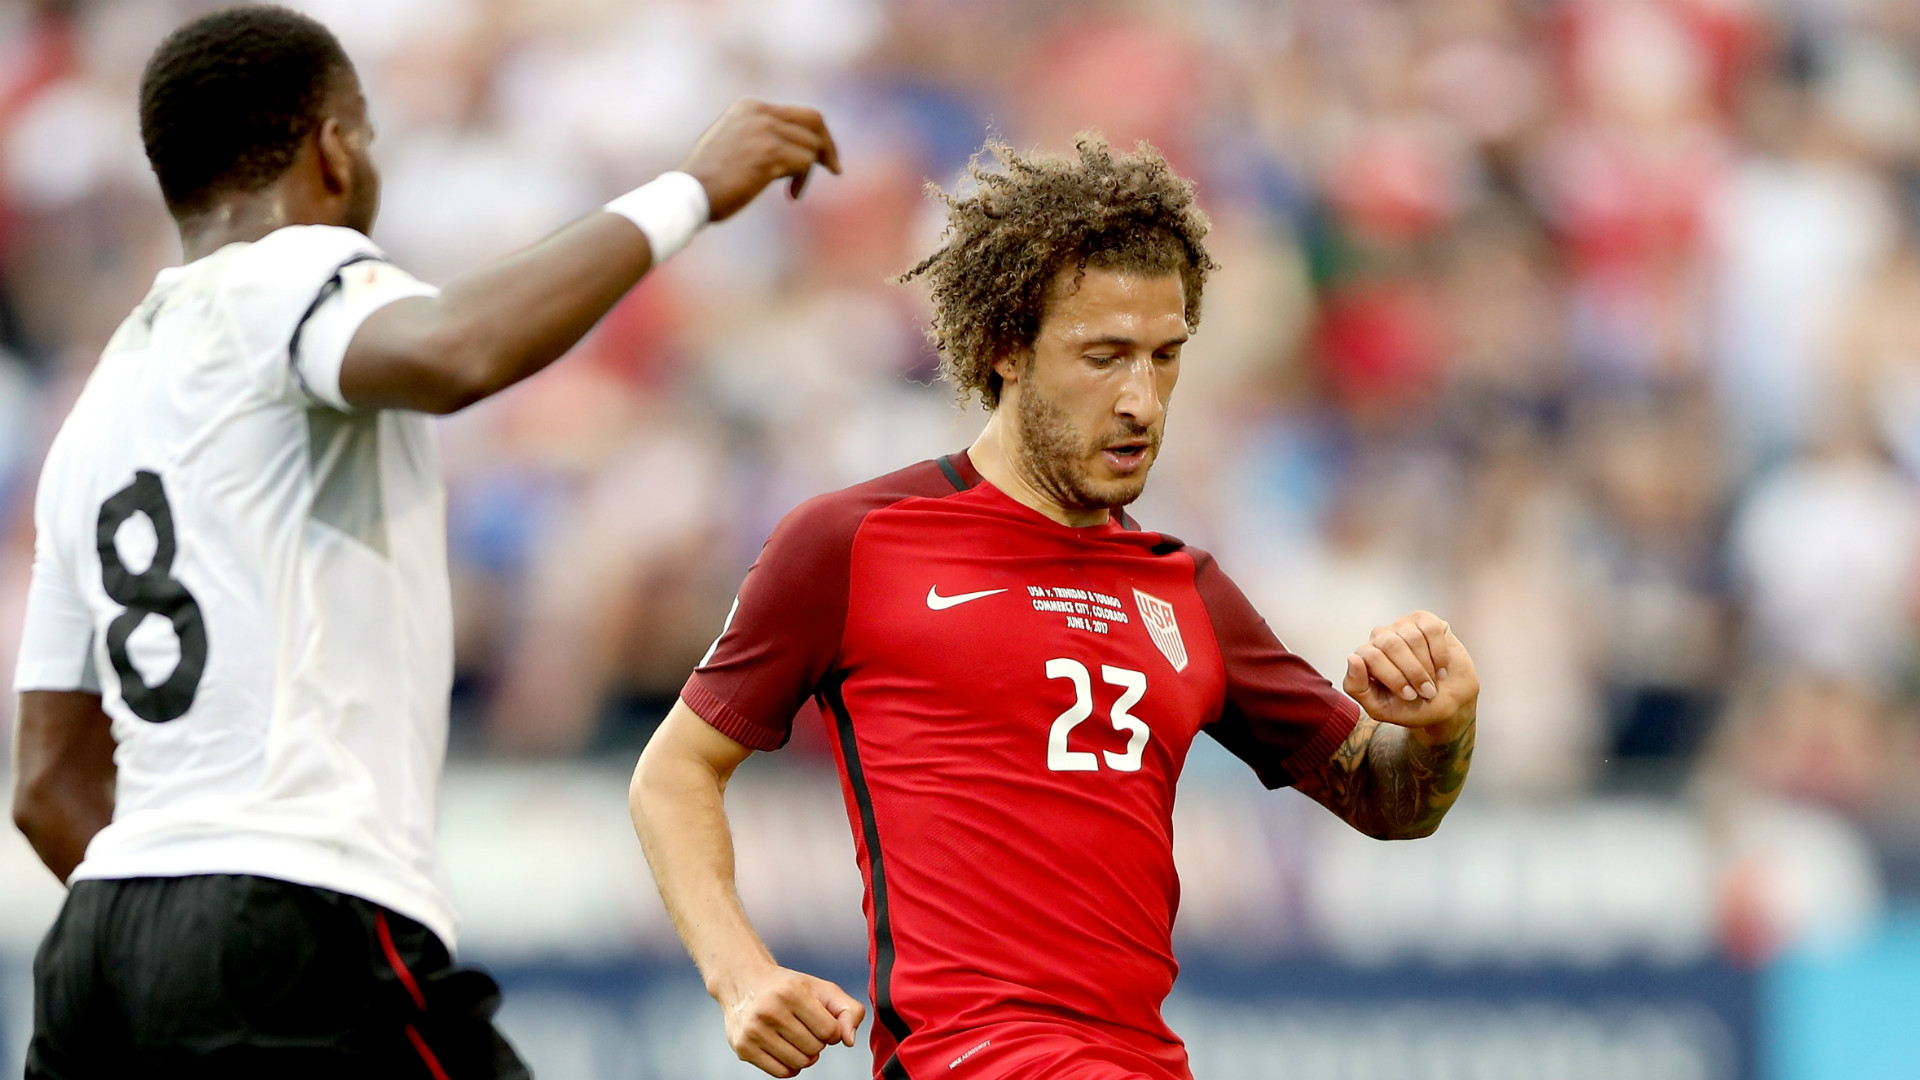 United States of America drops Fabian Johnson for 2018 World Cup qualifiers